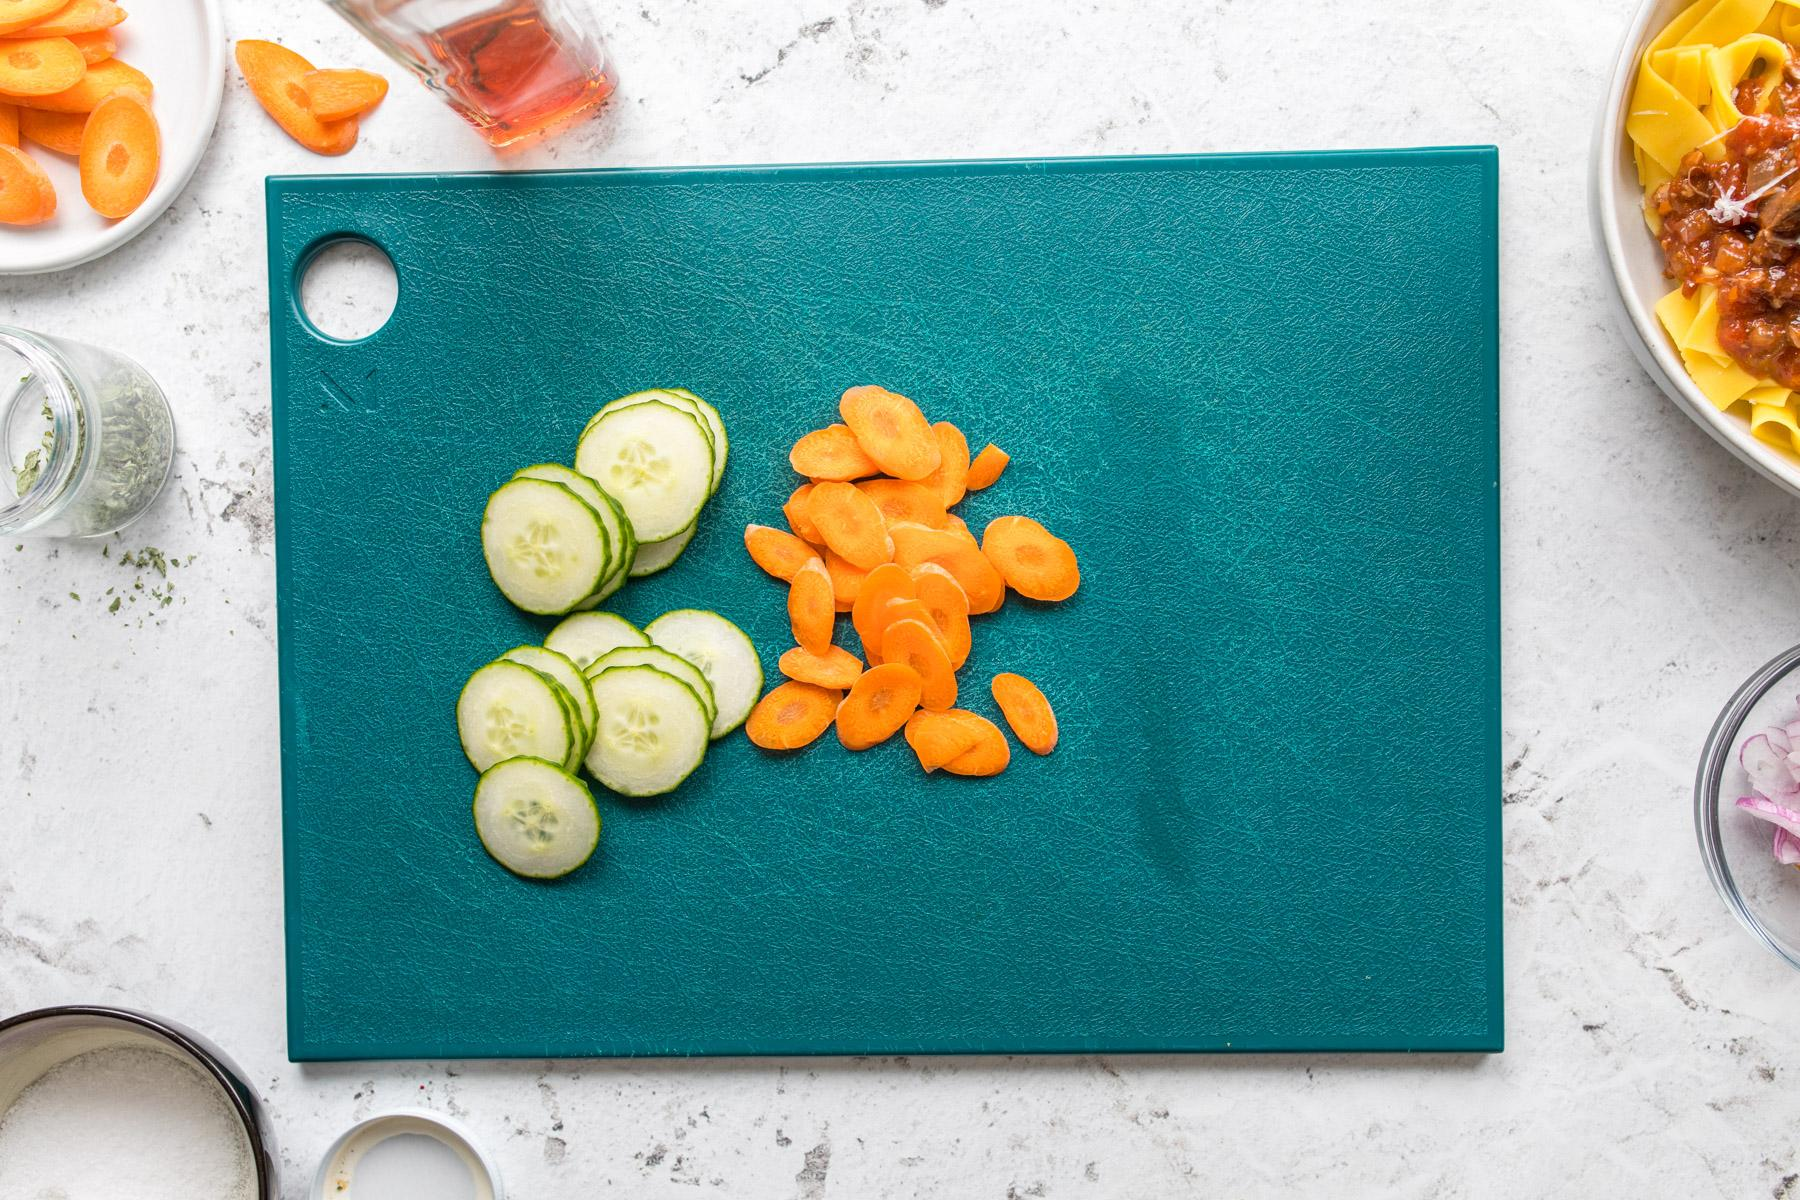 sliced cucumber and carrot on a green cutting board